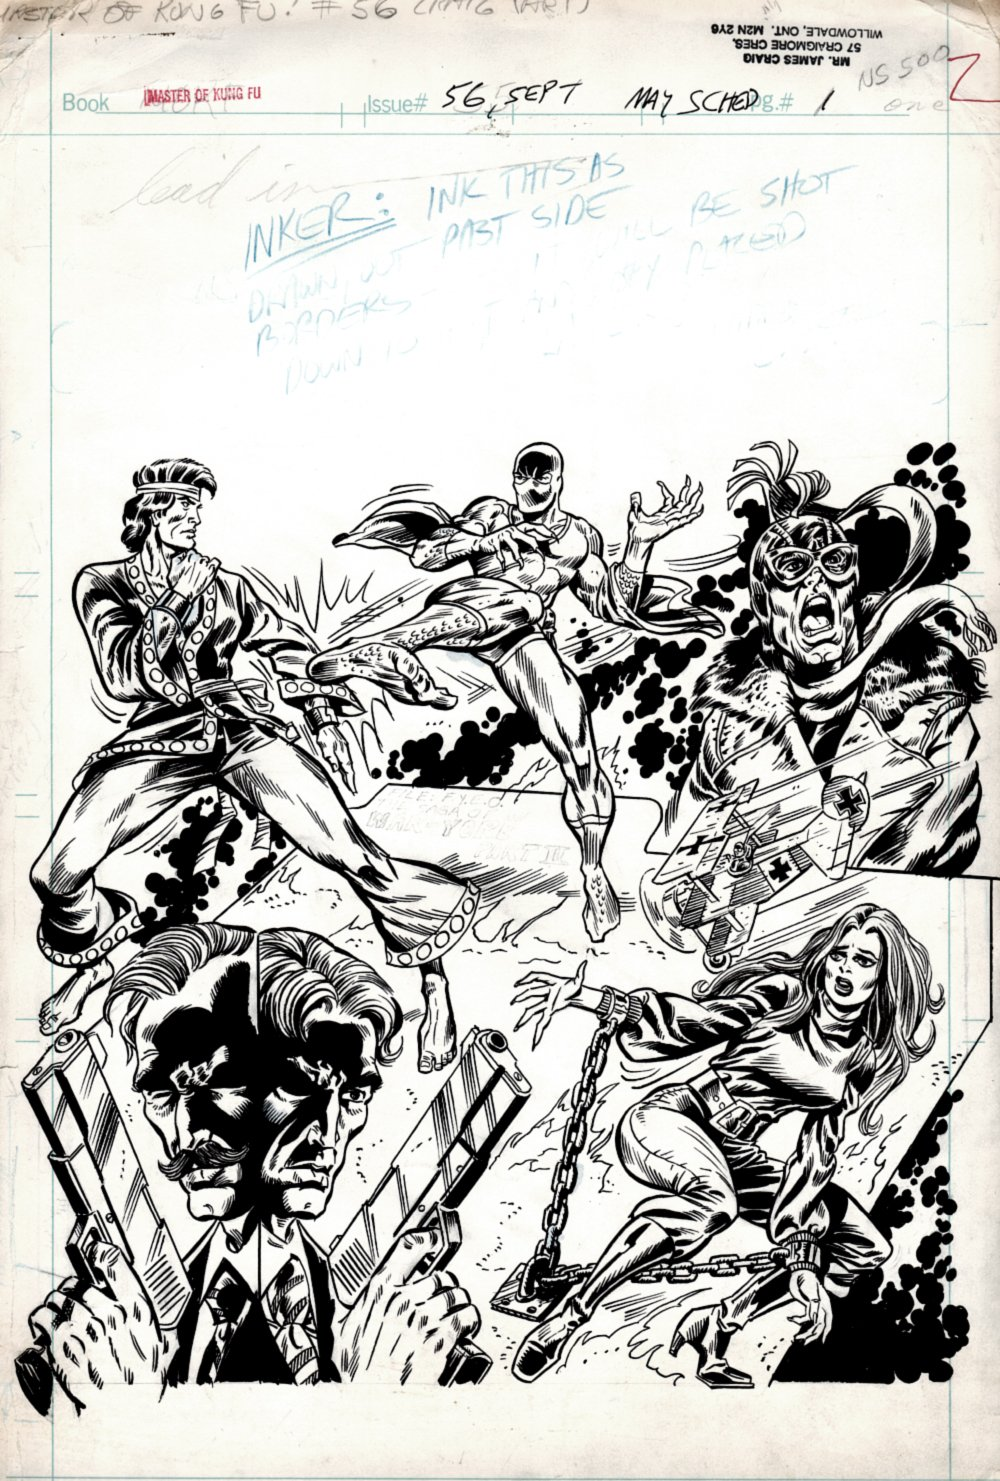 Master of Kung Fu #56 p 1 SPLASH (EVERYONE ON THIS ONE!) 1977